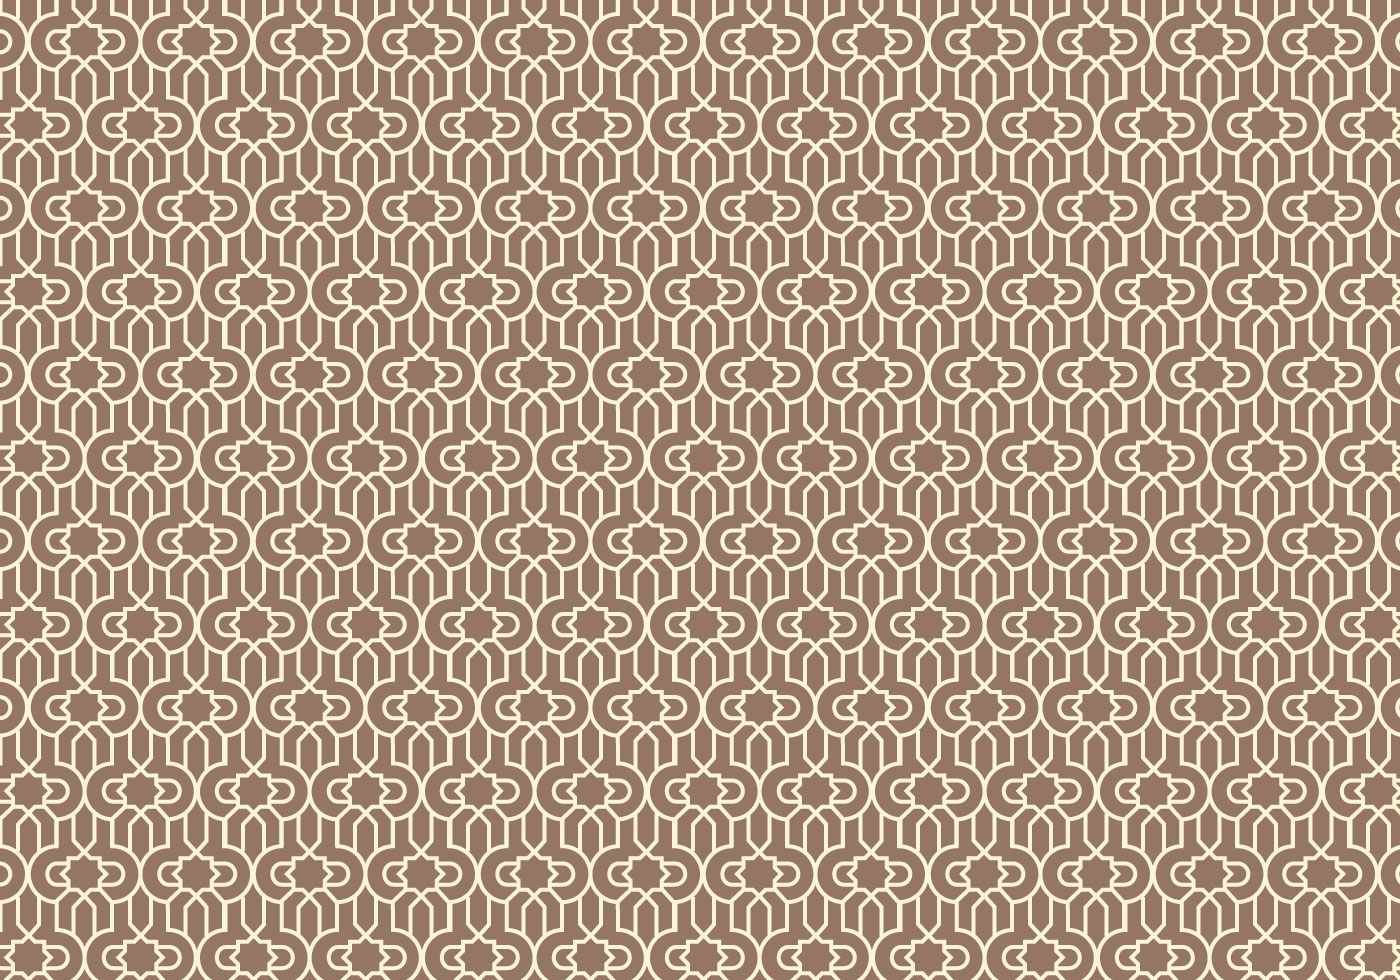 Outlined Arabic Pattern Background Download Free Vector